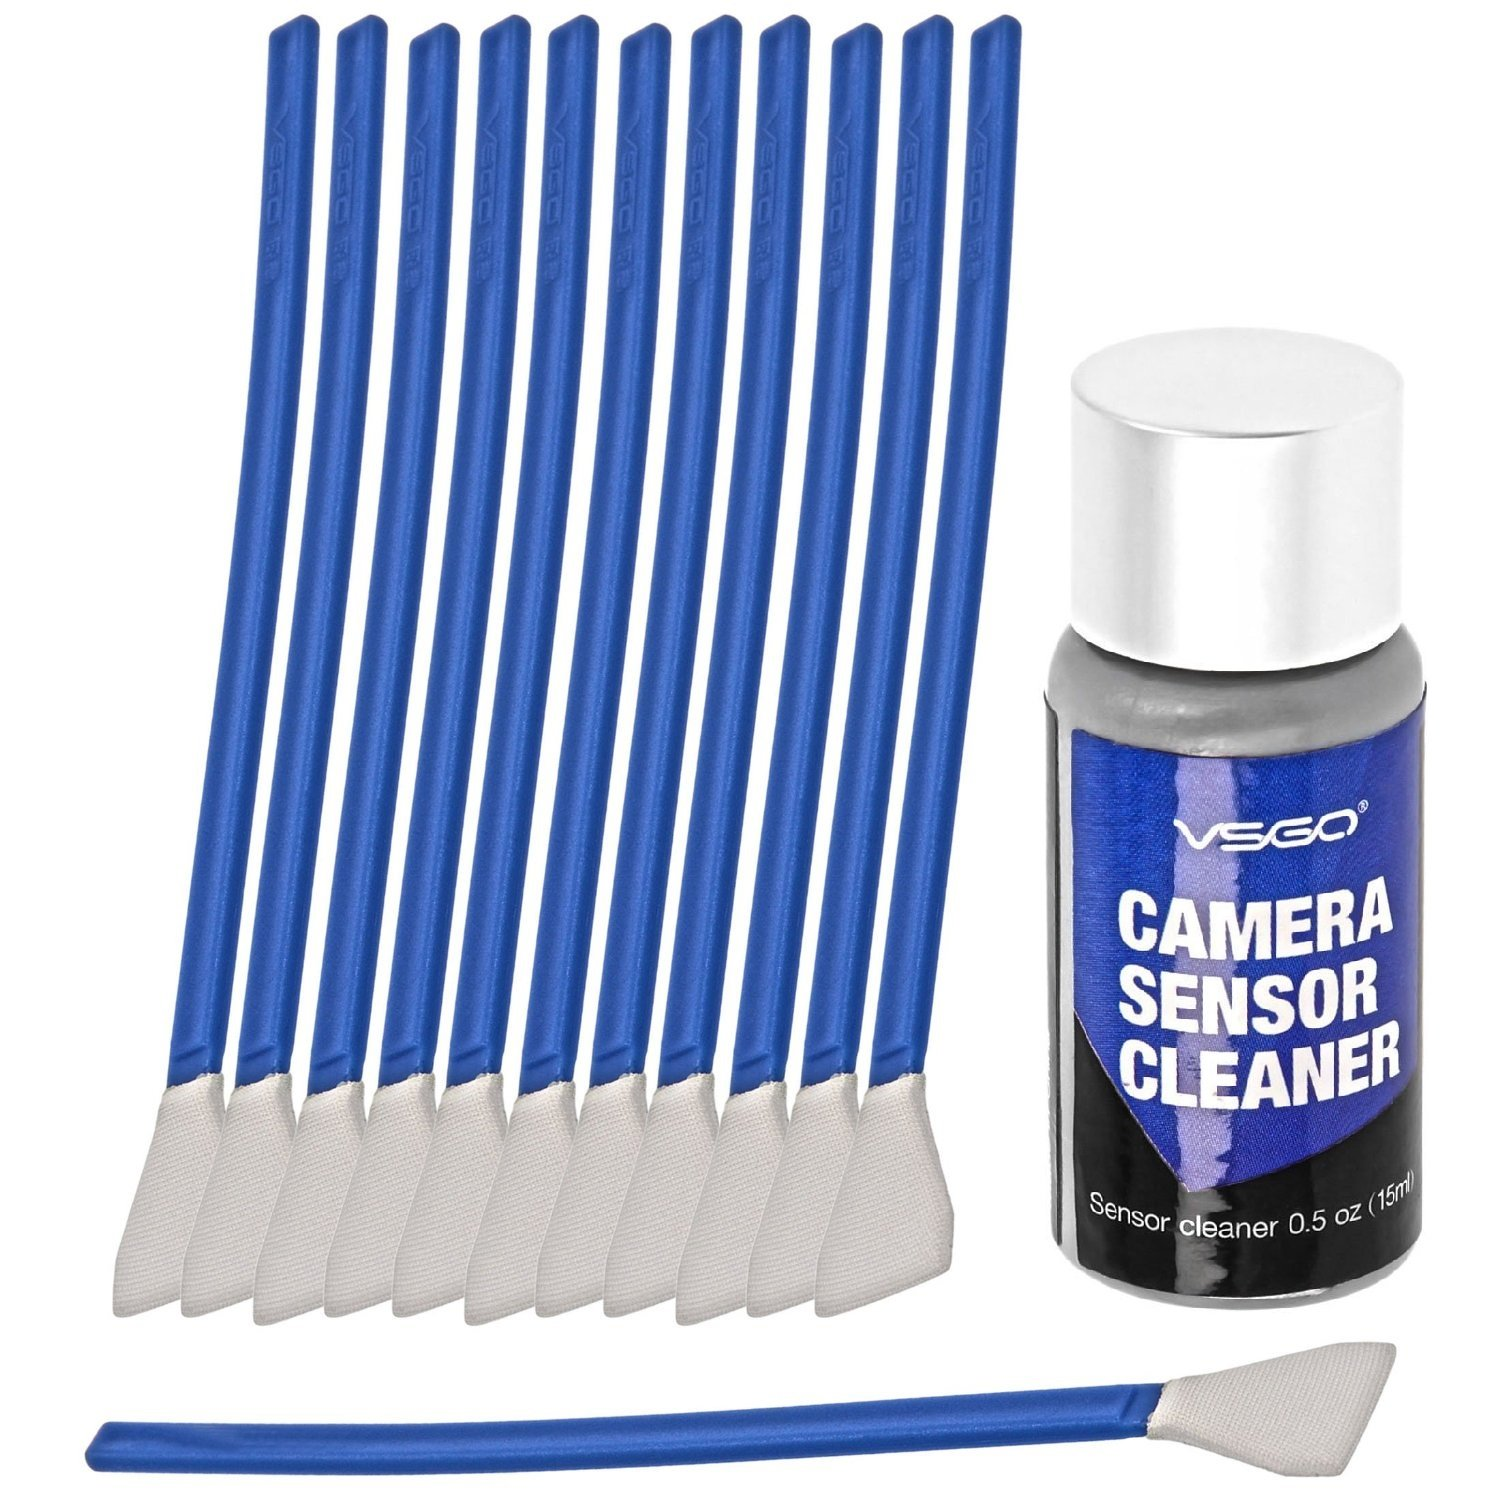 APS-C Frame (CCD/CMOS) Digital Camera Sensor Cleaning Swab Type 2 Cleaning Kit (Box of 12 X 16mm Swab + 15ml Sensor Cleaner) by UES